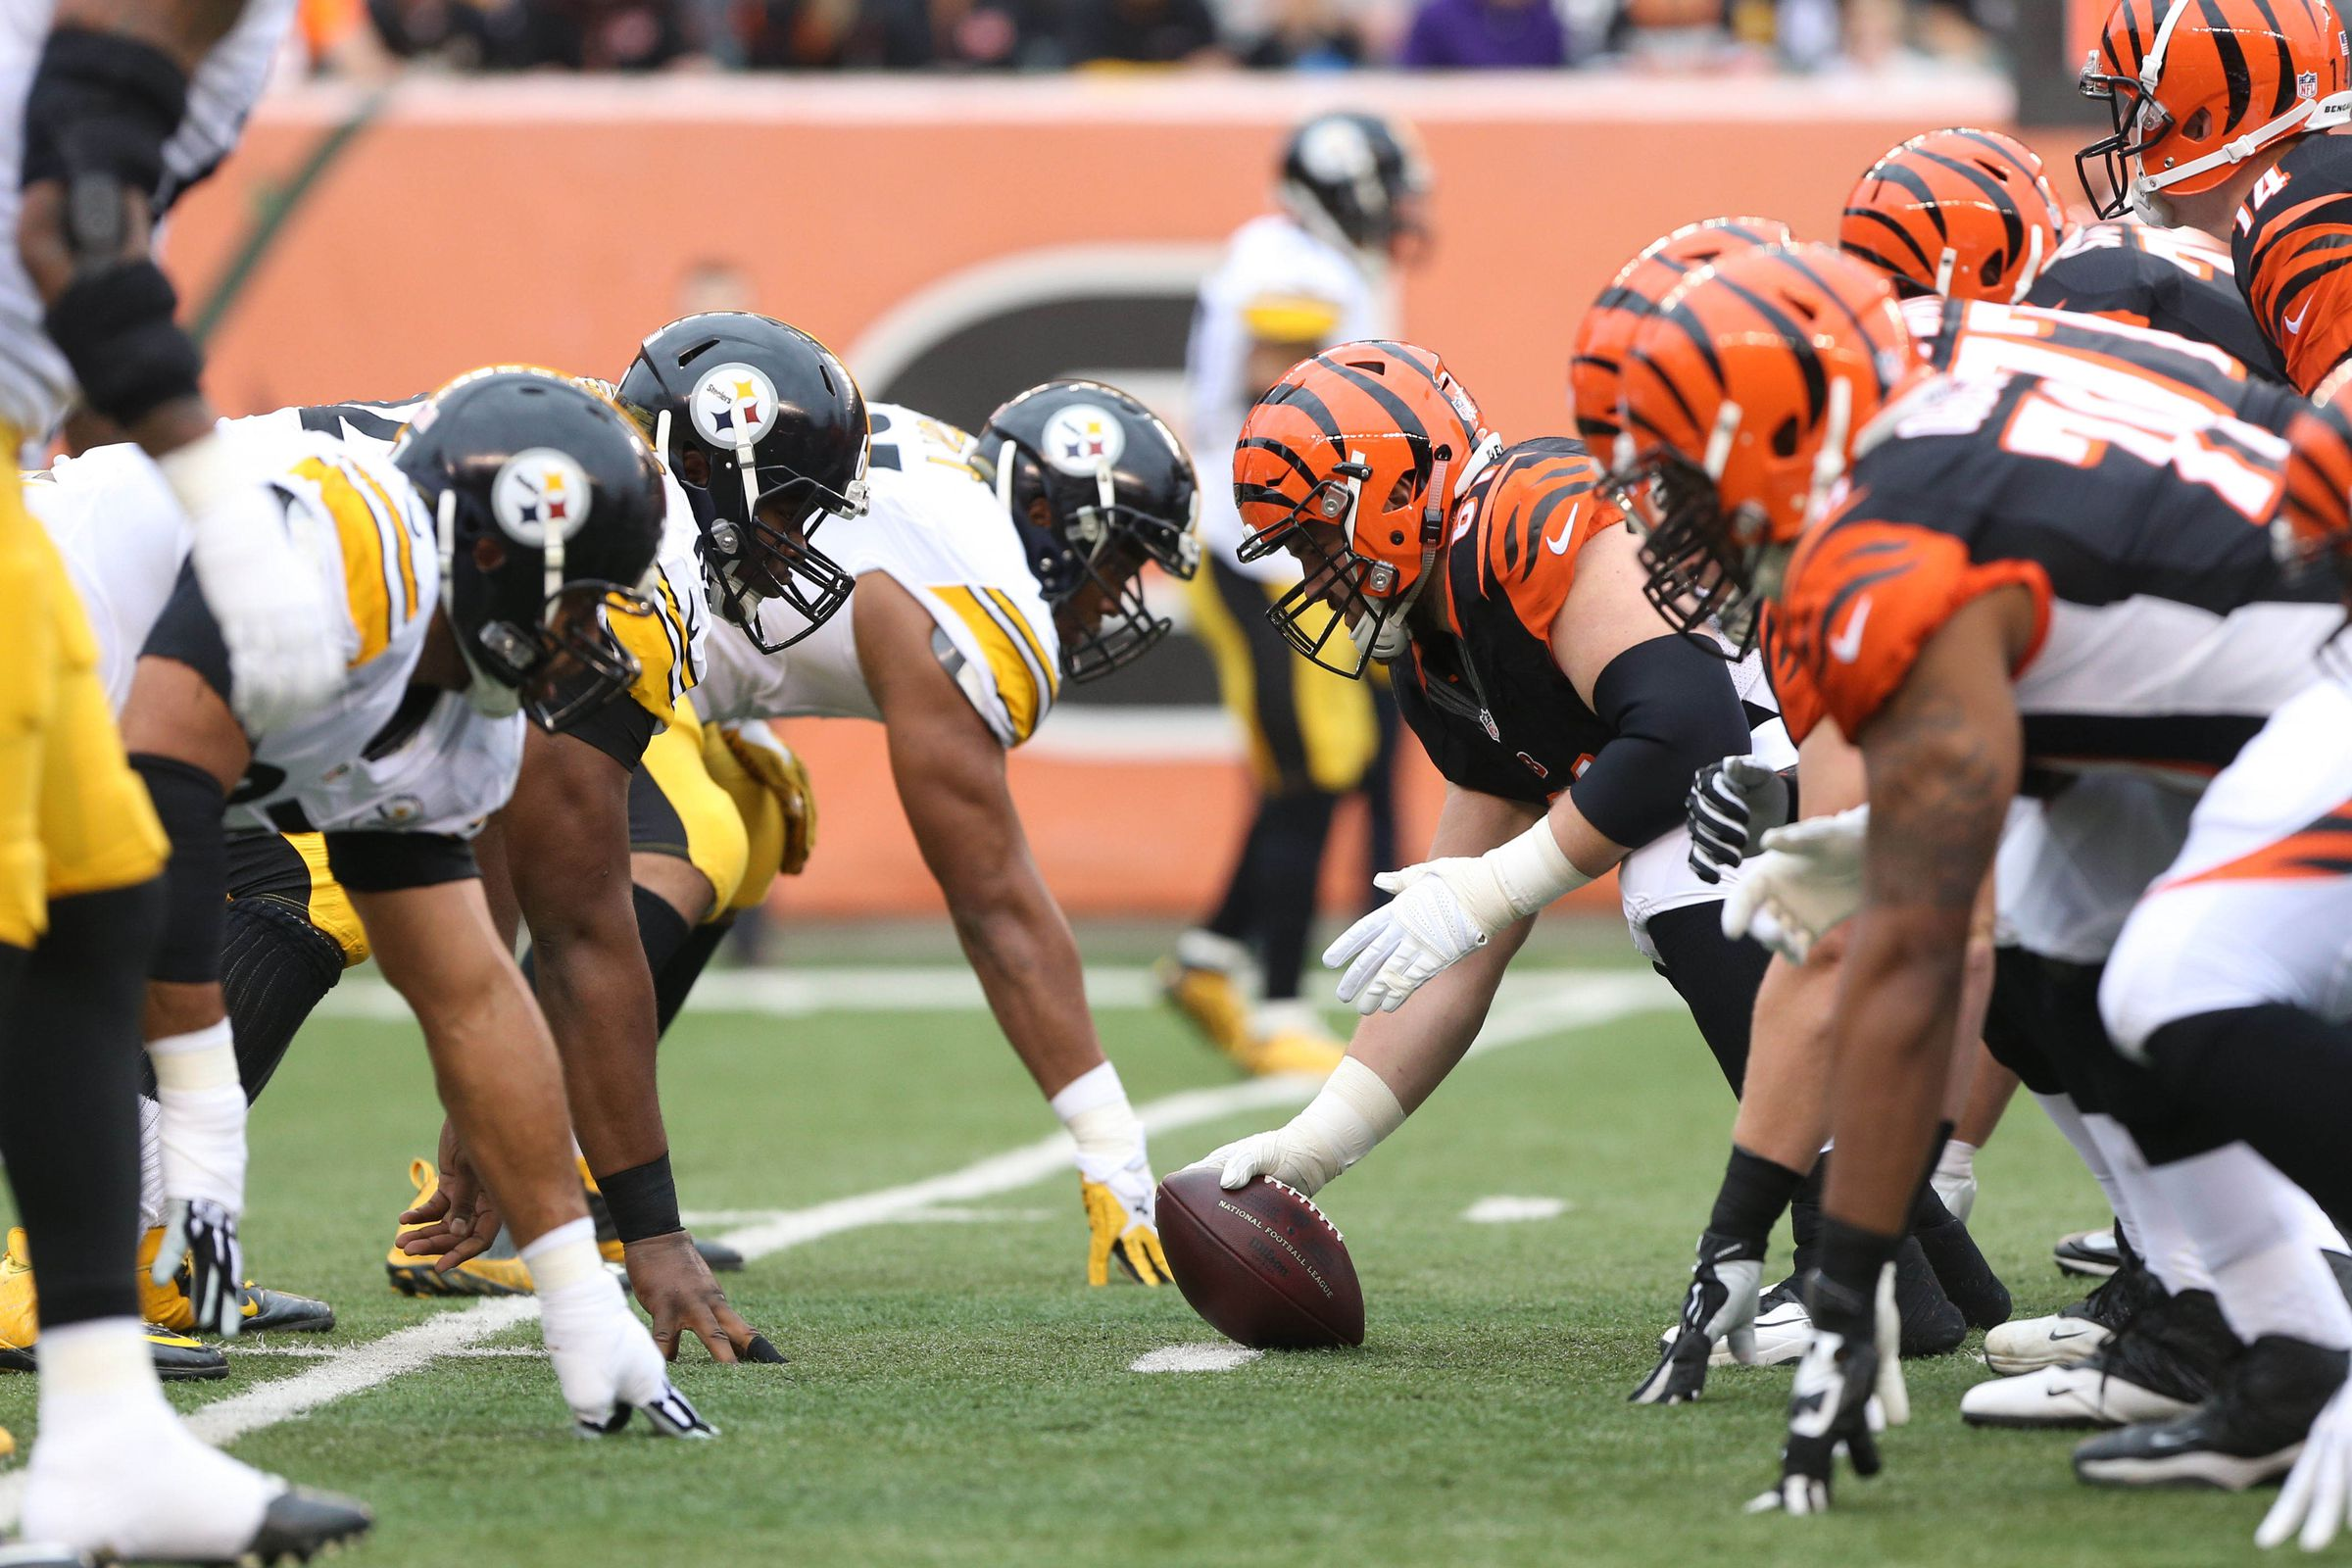 The things to know today about Bengals-Steelers game